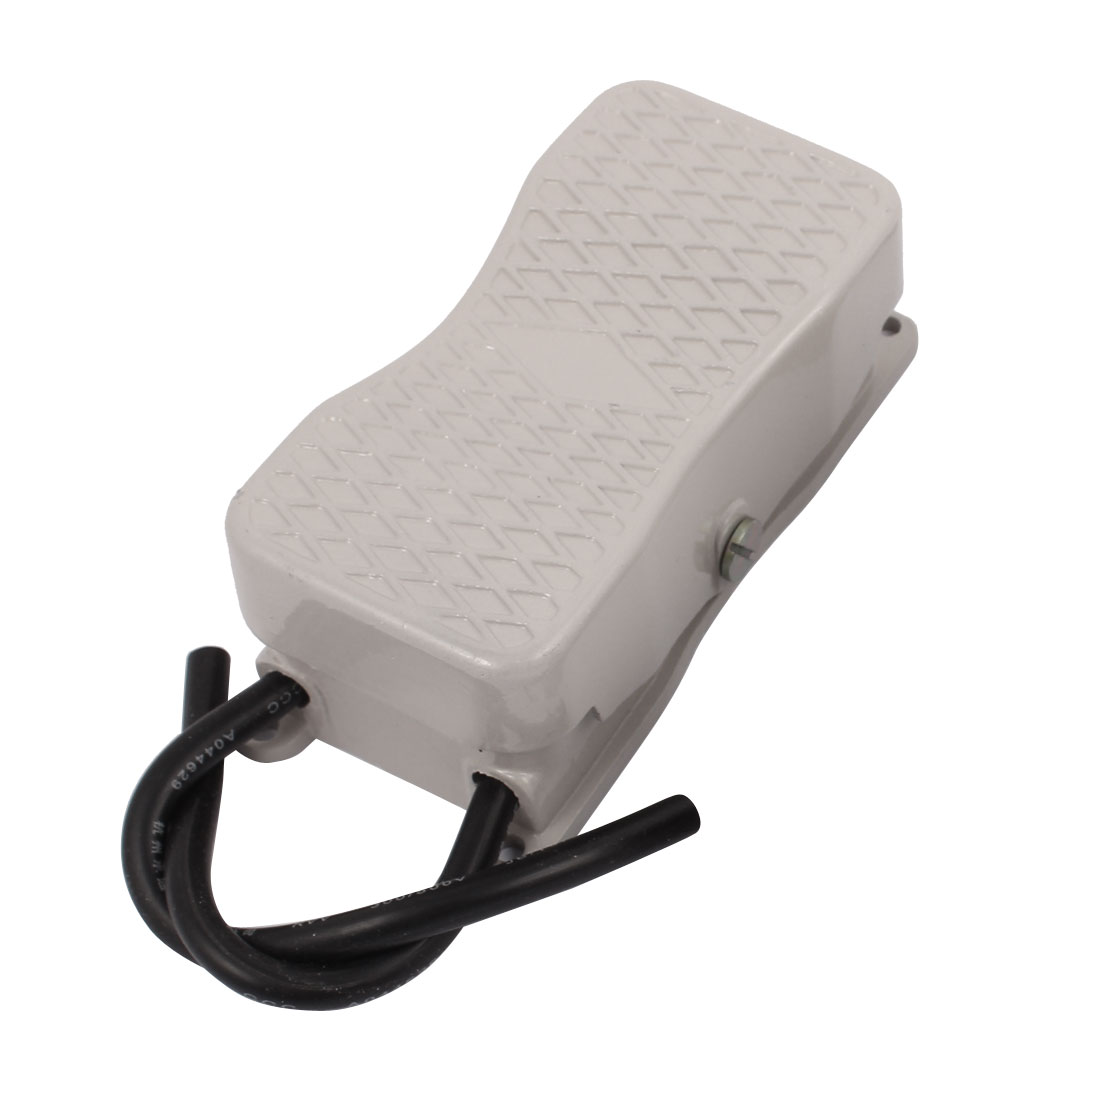 10-15A 380V 2NO Momentary Power Foot Switch Pedal Footswitch